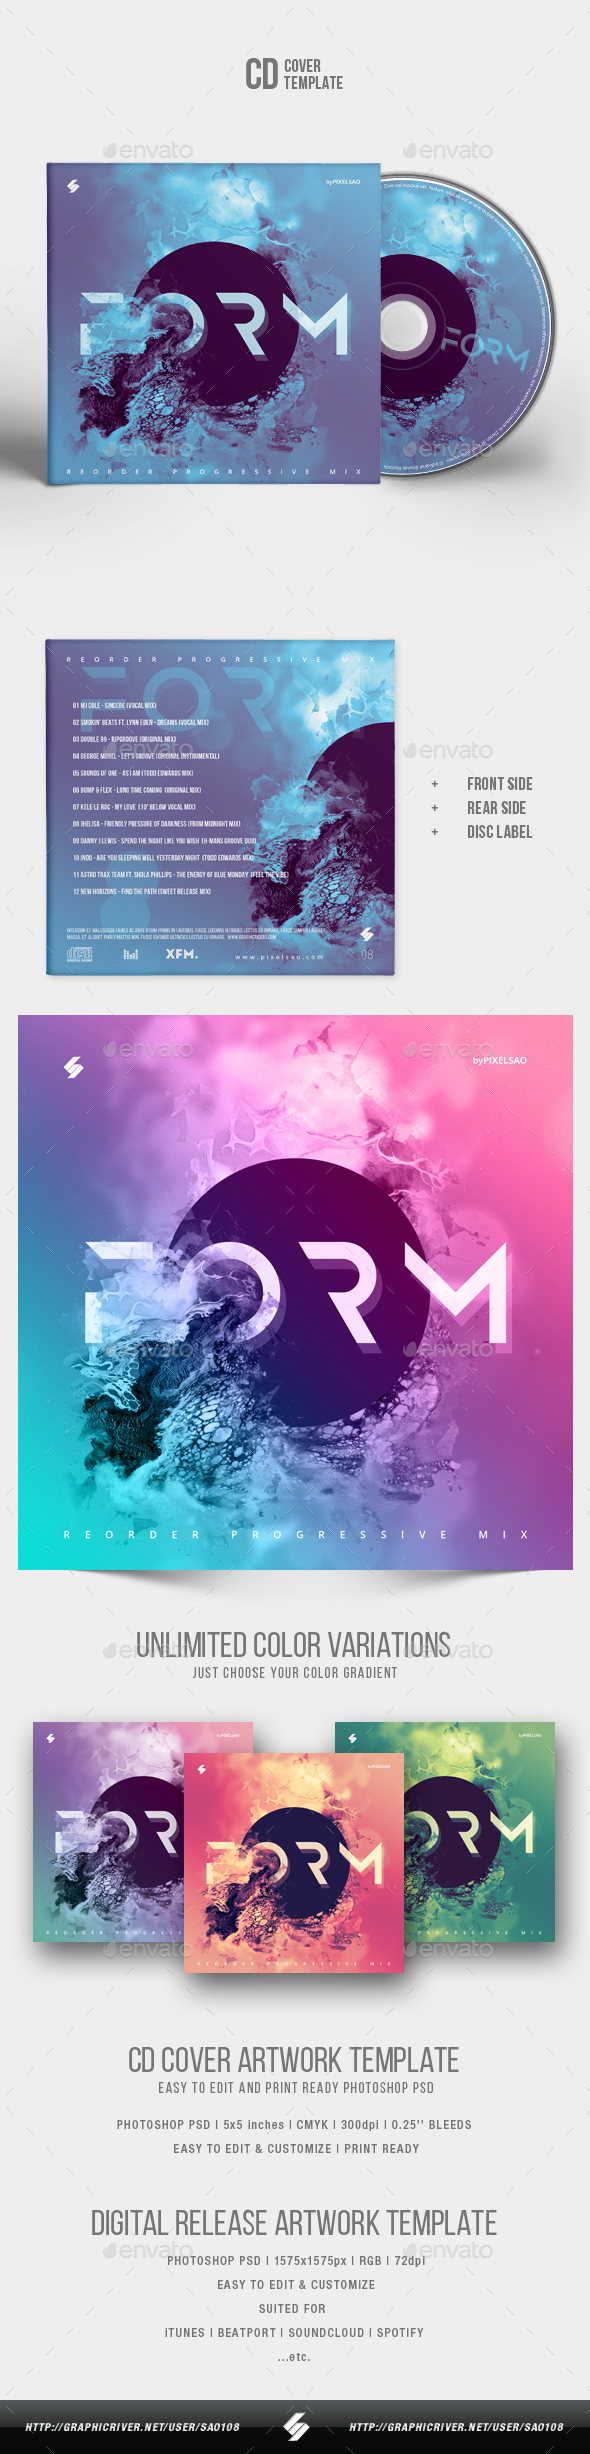 Form - Abstract CD Cover Artwork Template - CD & DVD Artwork Print Templates